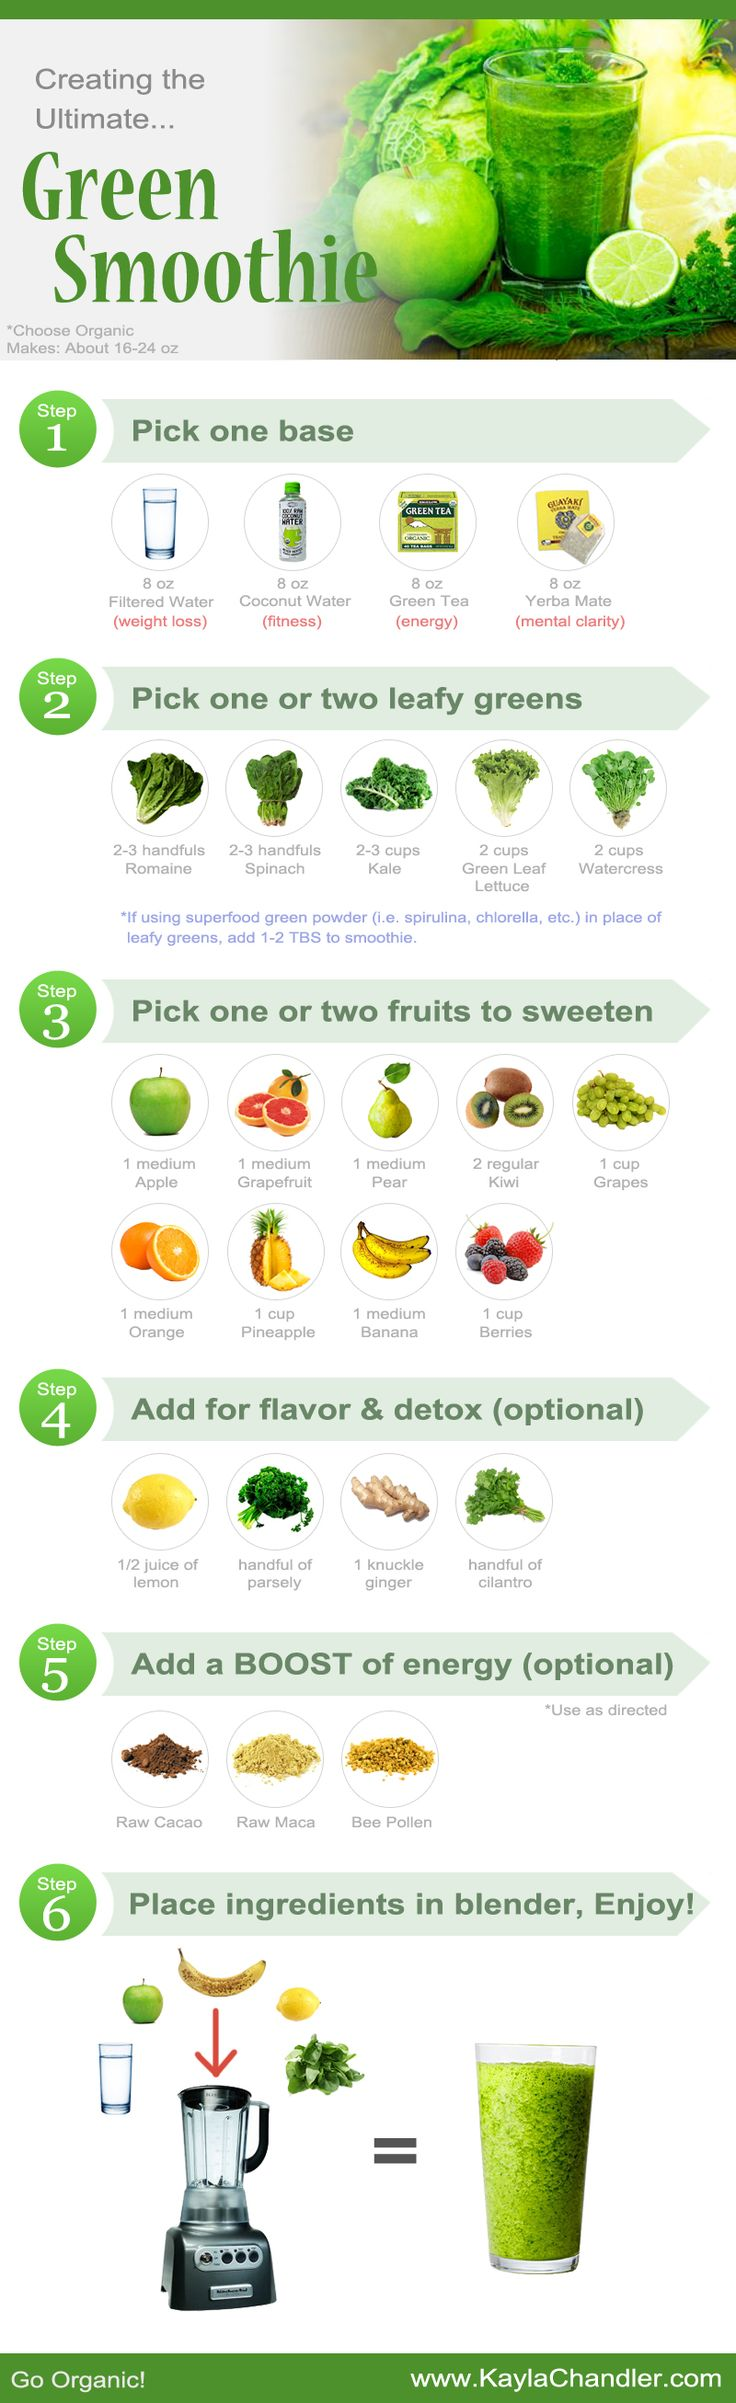 Guide to making the ultimate Green Smoothie for health, weight loss, and energy... Great for reference! // In need of a detox? Get your teatox on with 10% off using our discount code Pinterest10 on www.skinnymetea.c... X